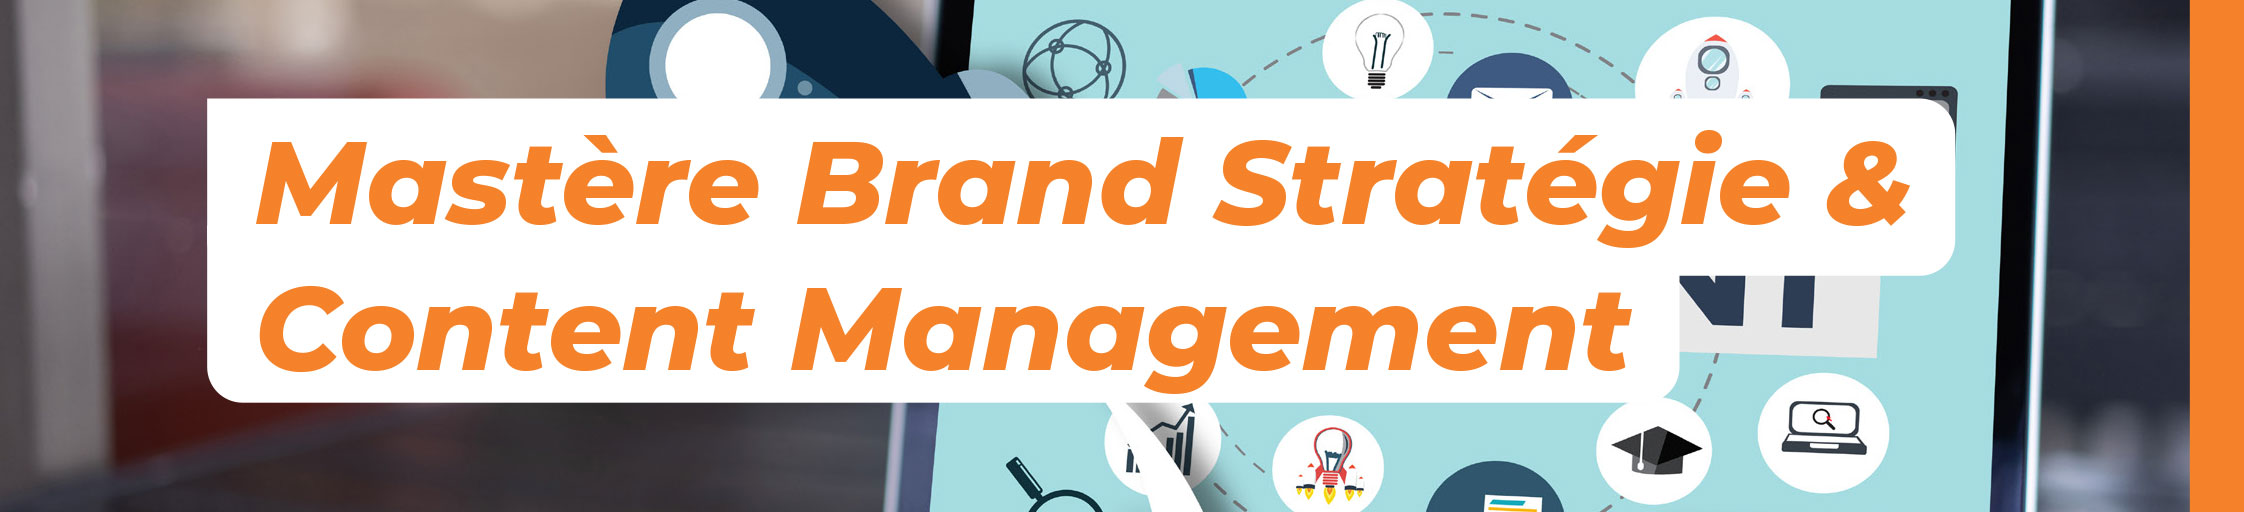 mastere brand strategy content management